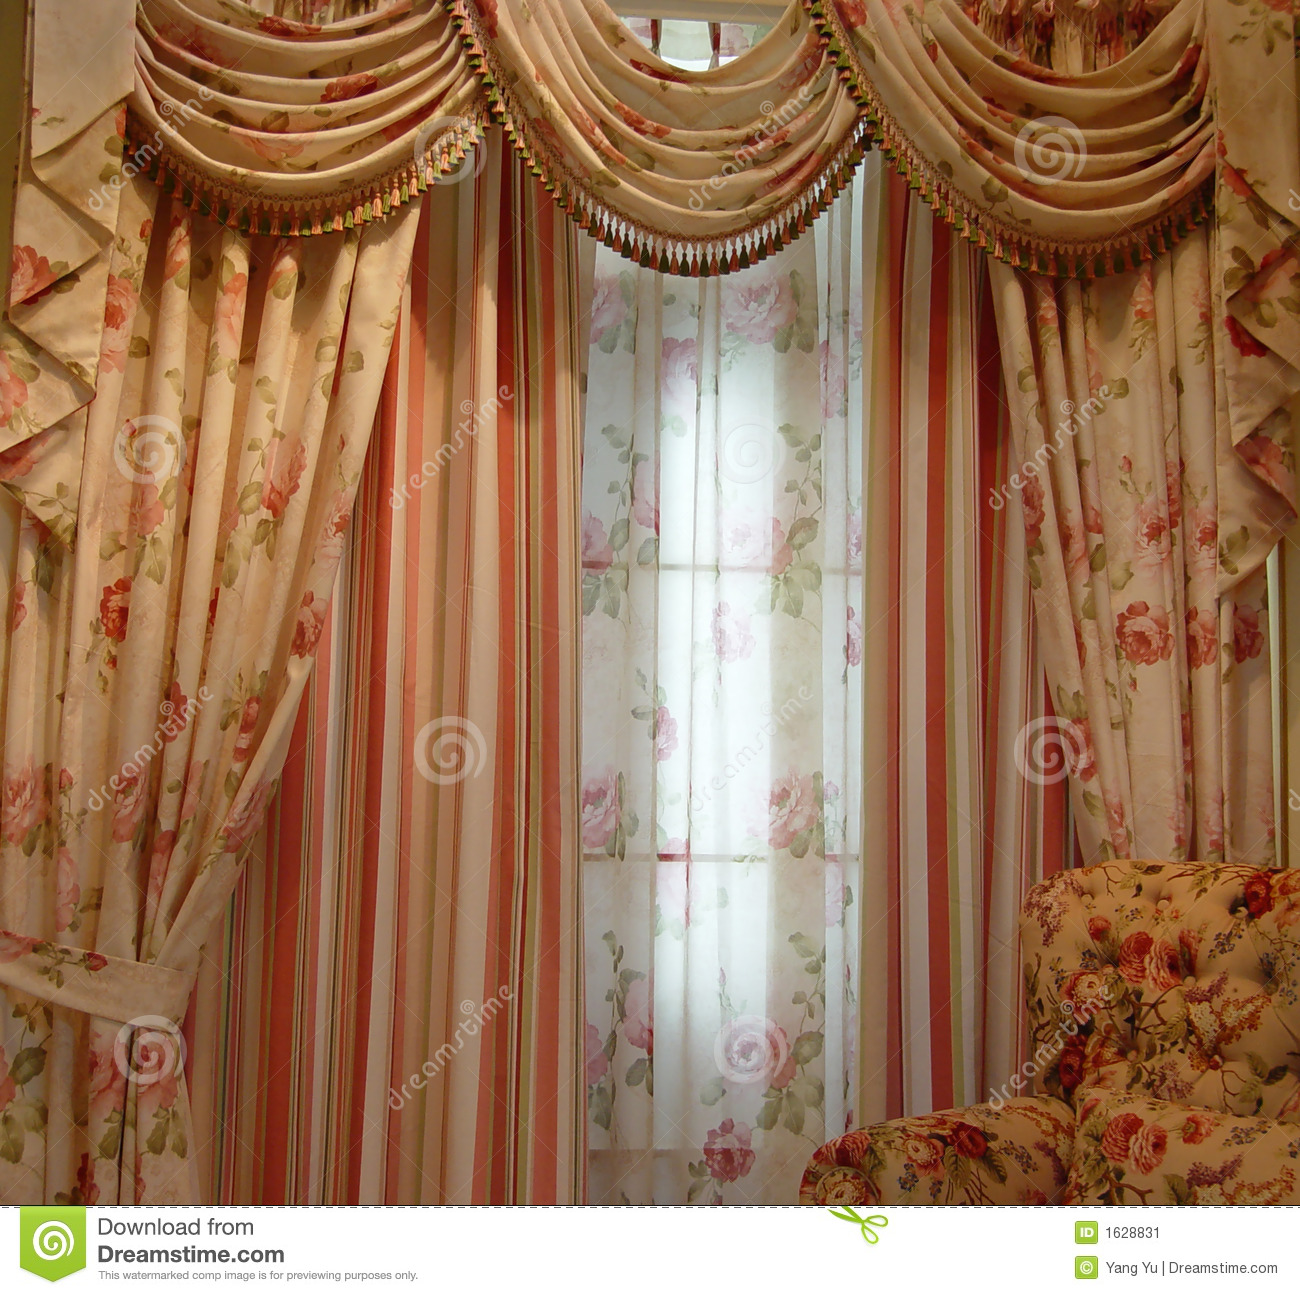 Thermal Curtains For Winter Persian Curtains and Drapes